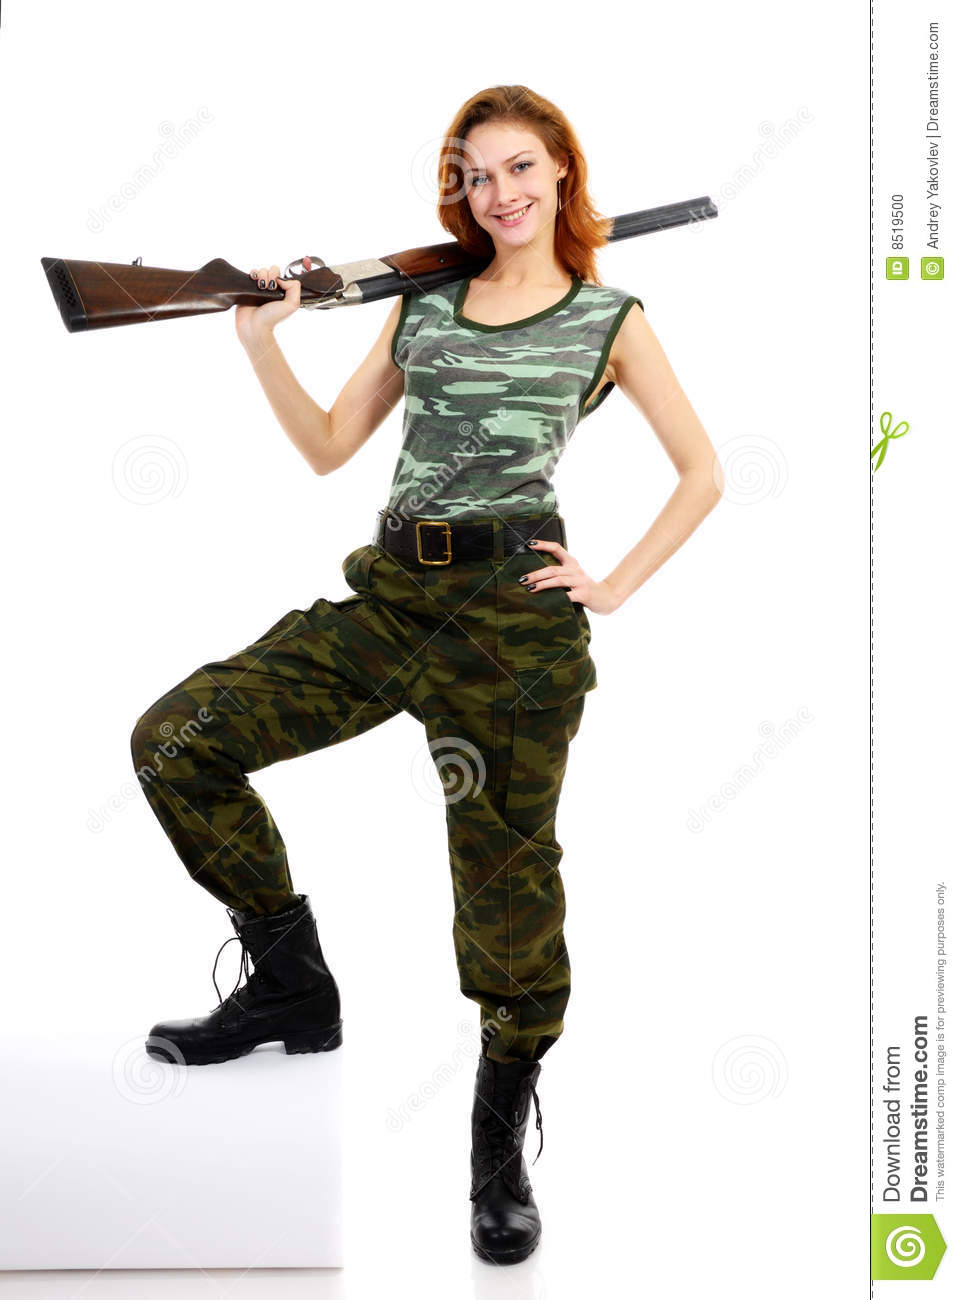 Woman dressed in green camouflage clothing and armed with double